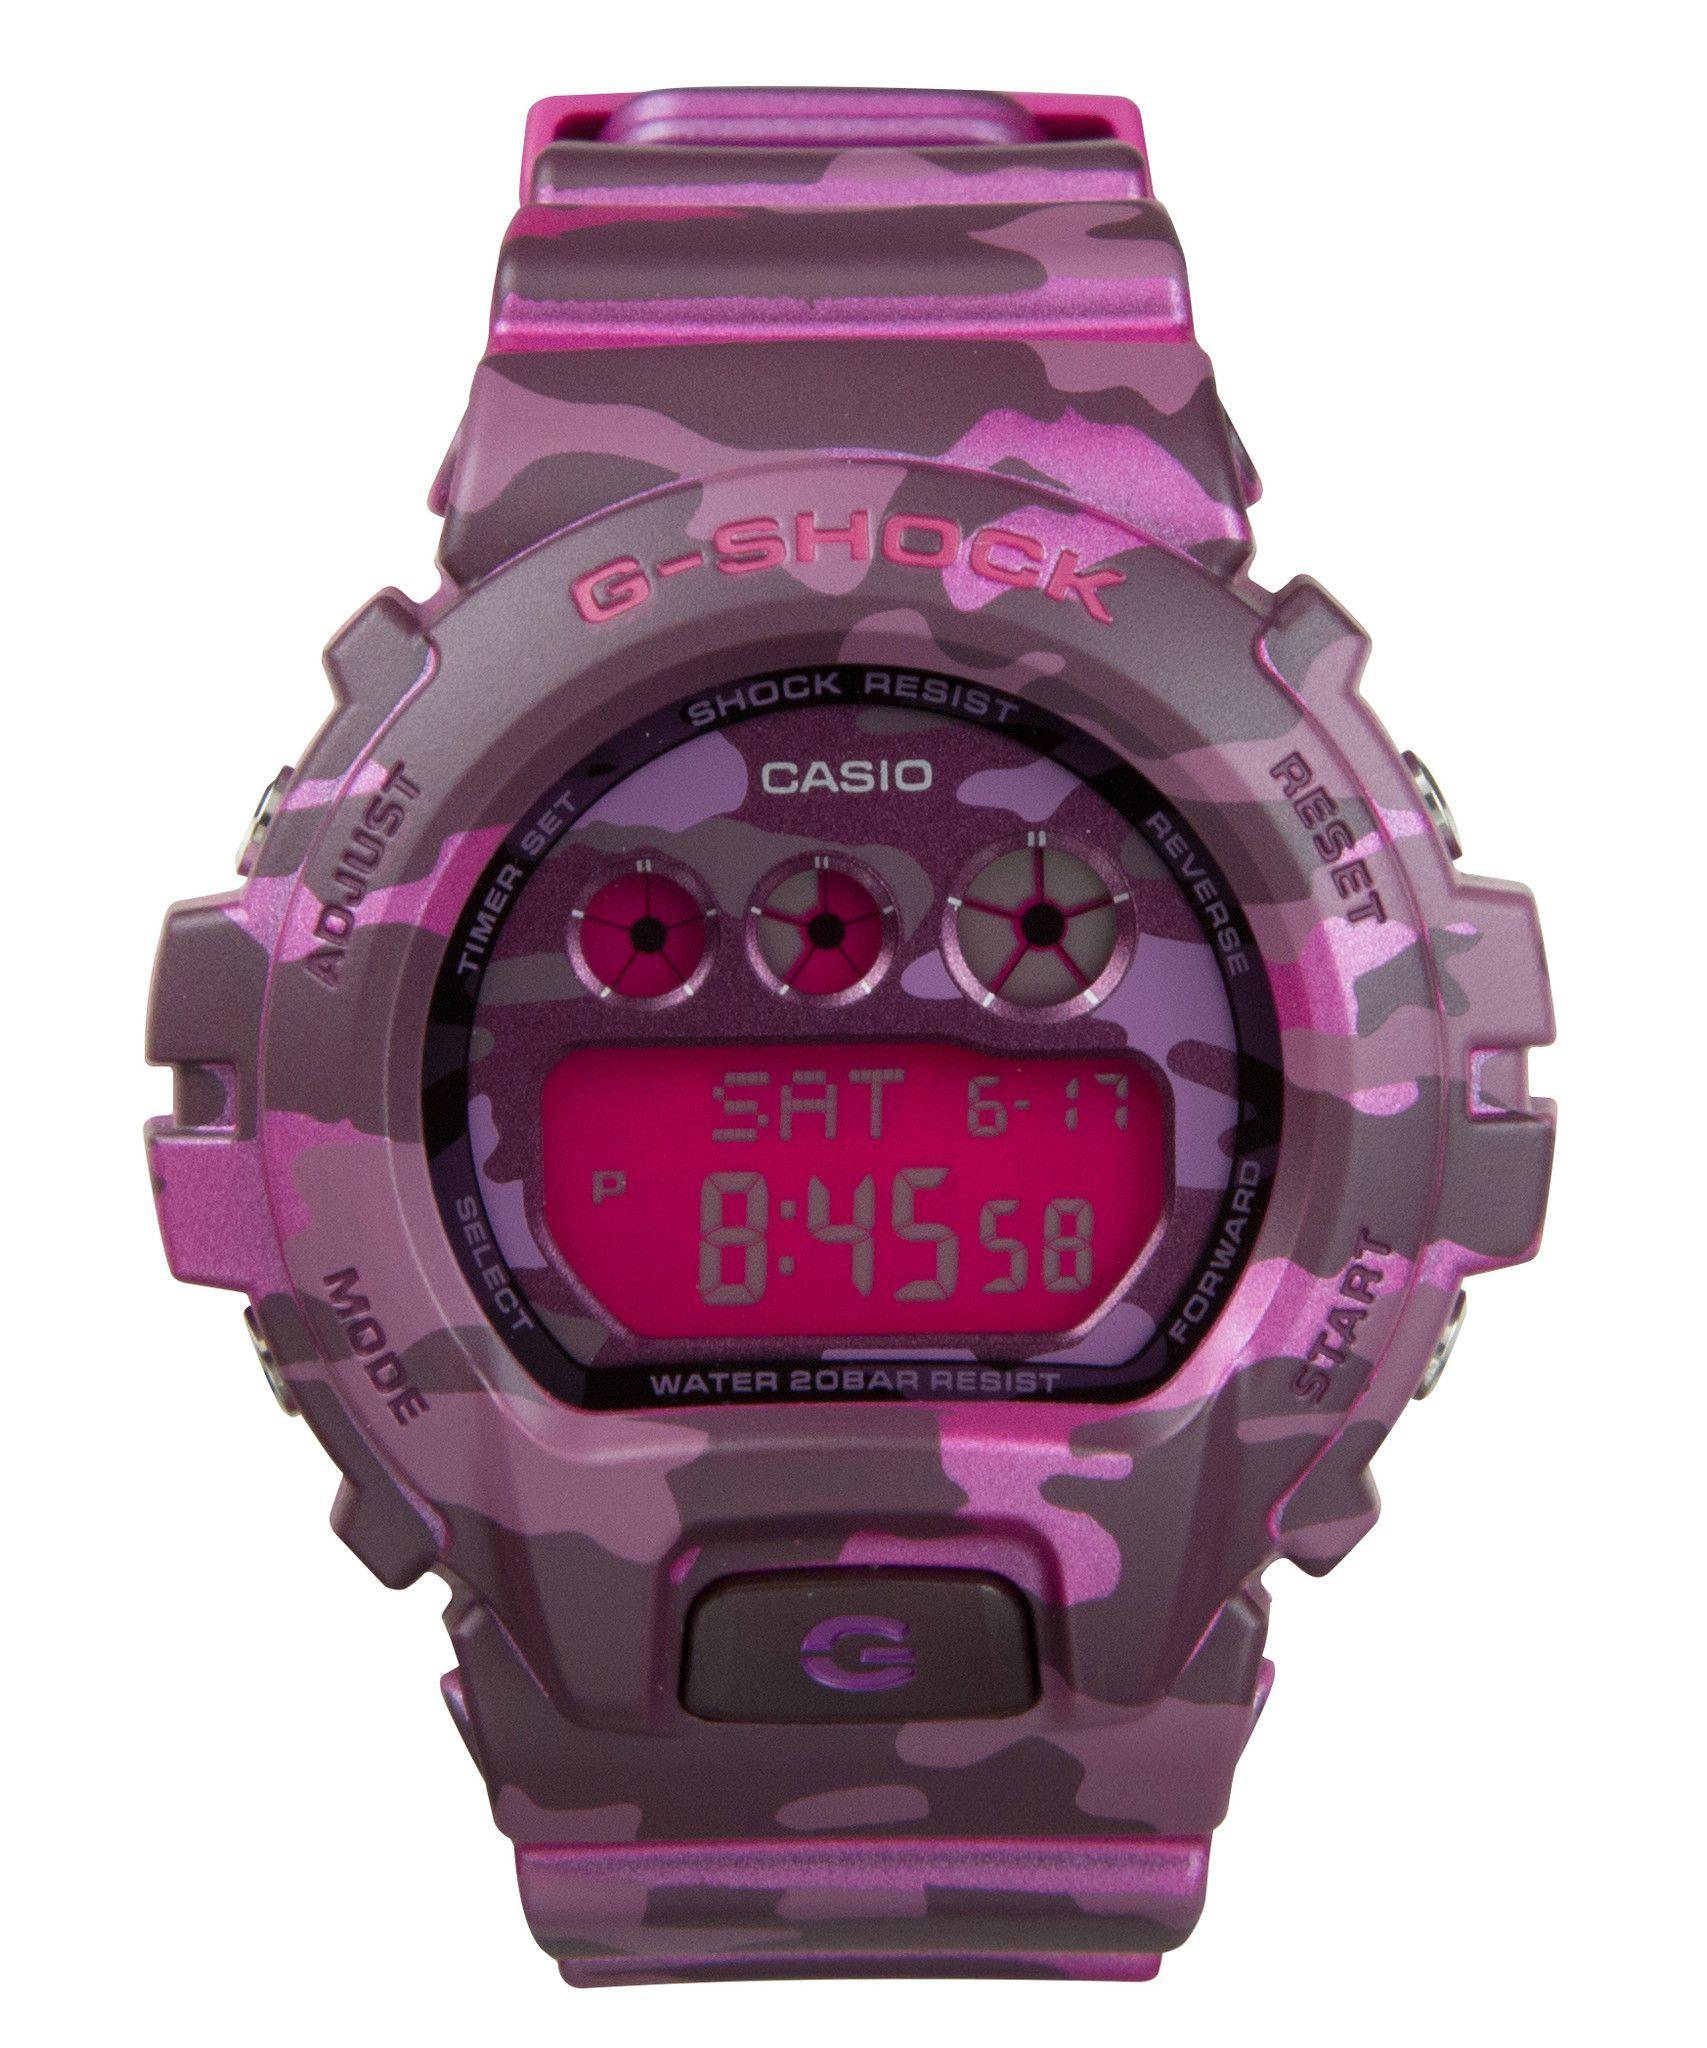 G-Shock GMDS6900CF-4 S Series Watch - Pink Camouflage  7f1c6b1b61